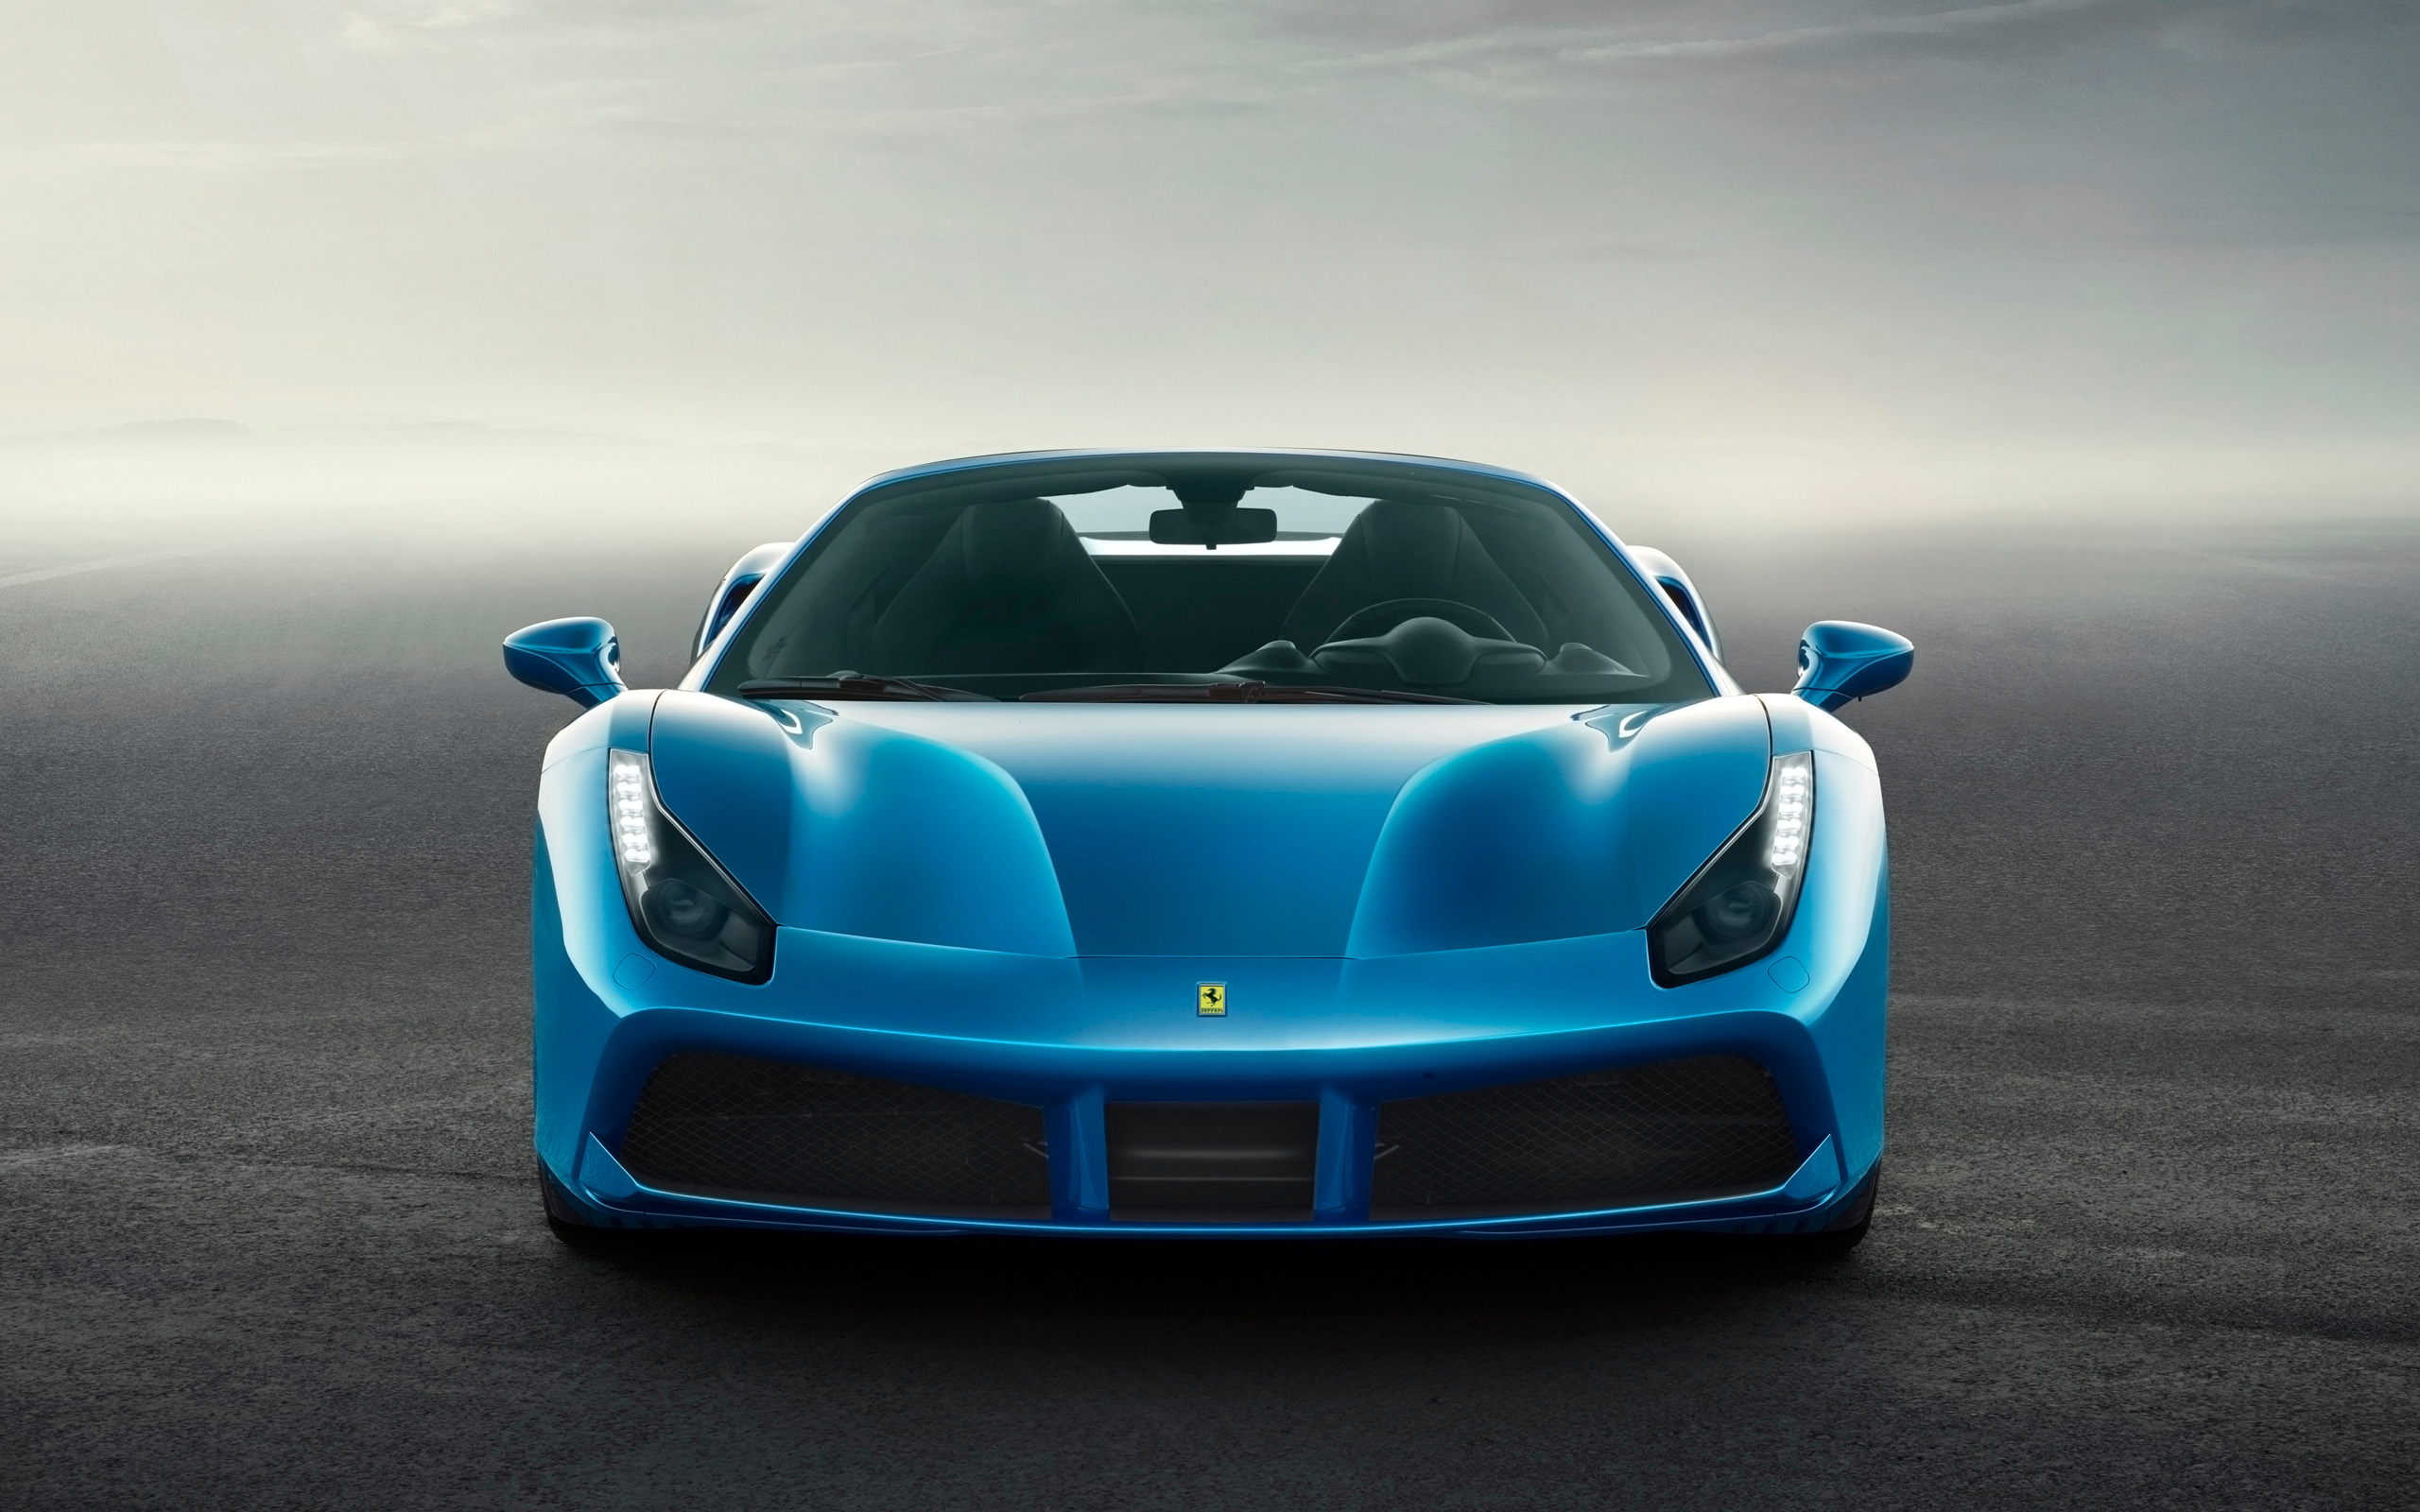 2016 Ferrari 488 Spider Wallpaper Hd Car Wallpapers